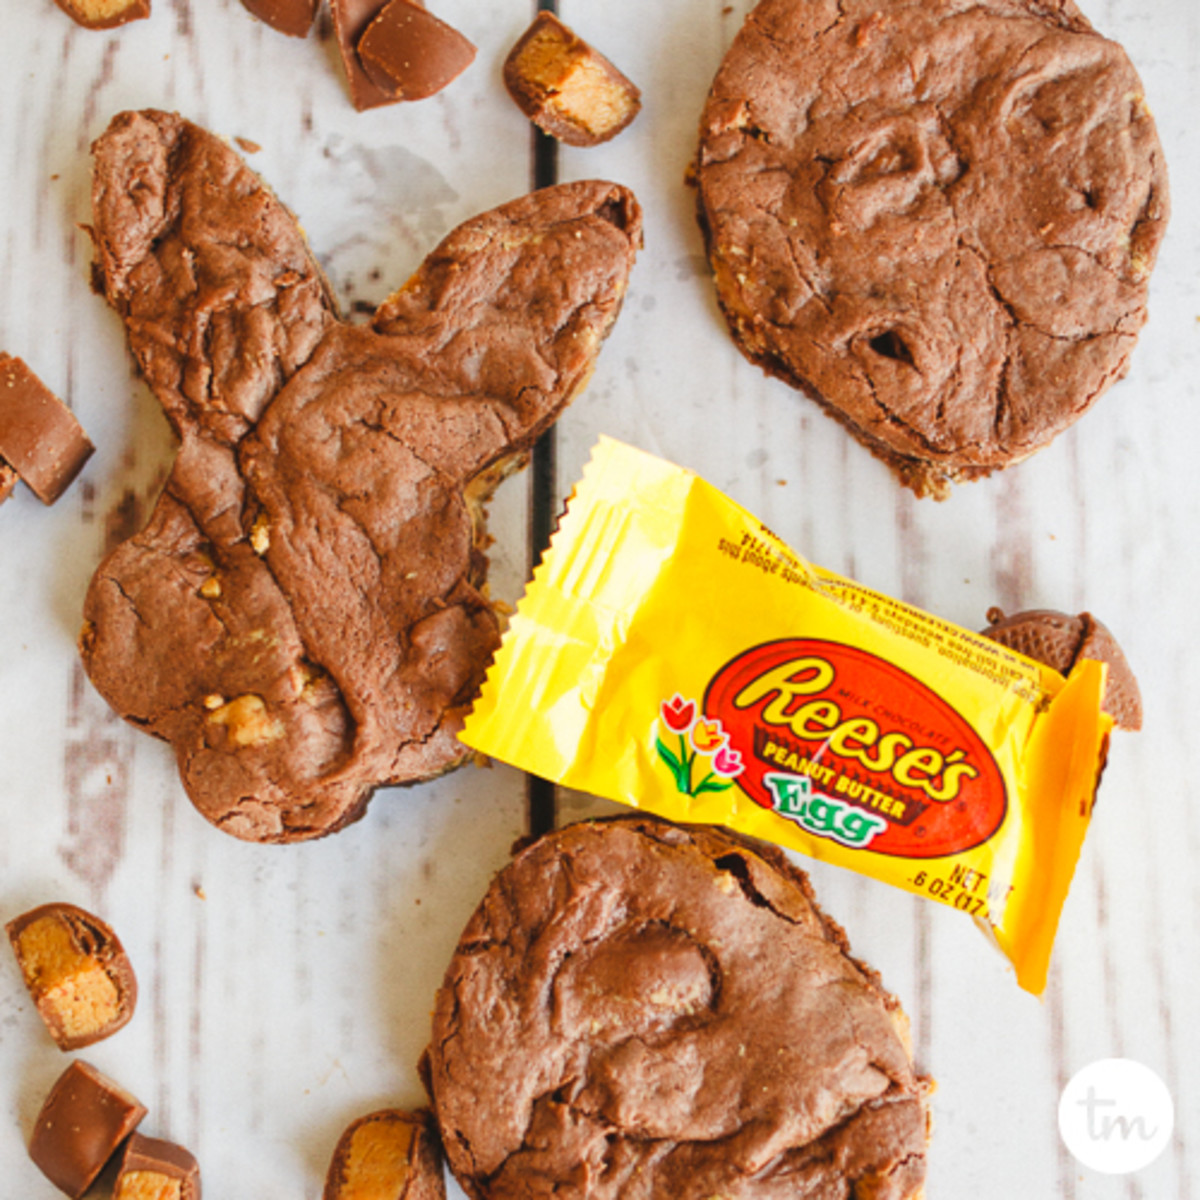 Cake Mix Reese's Peanut Butter Cookies - TodaysMama